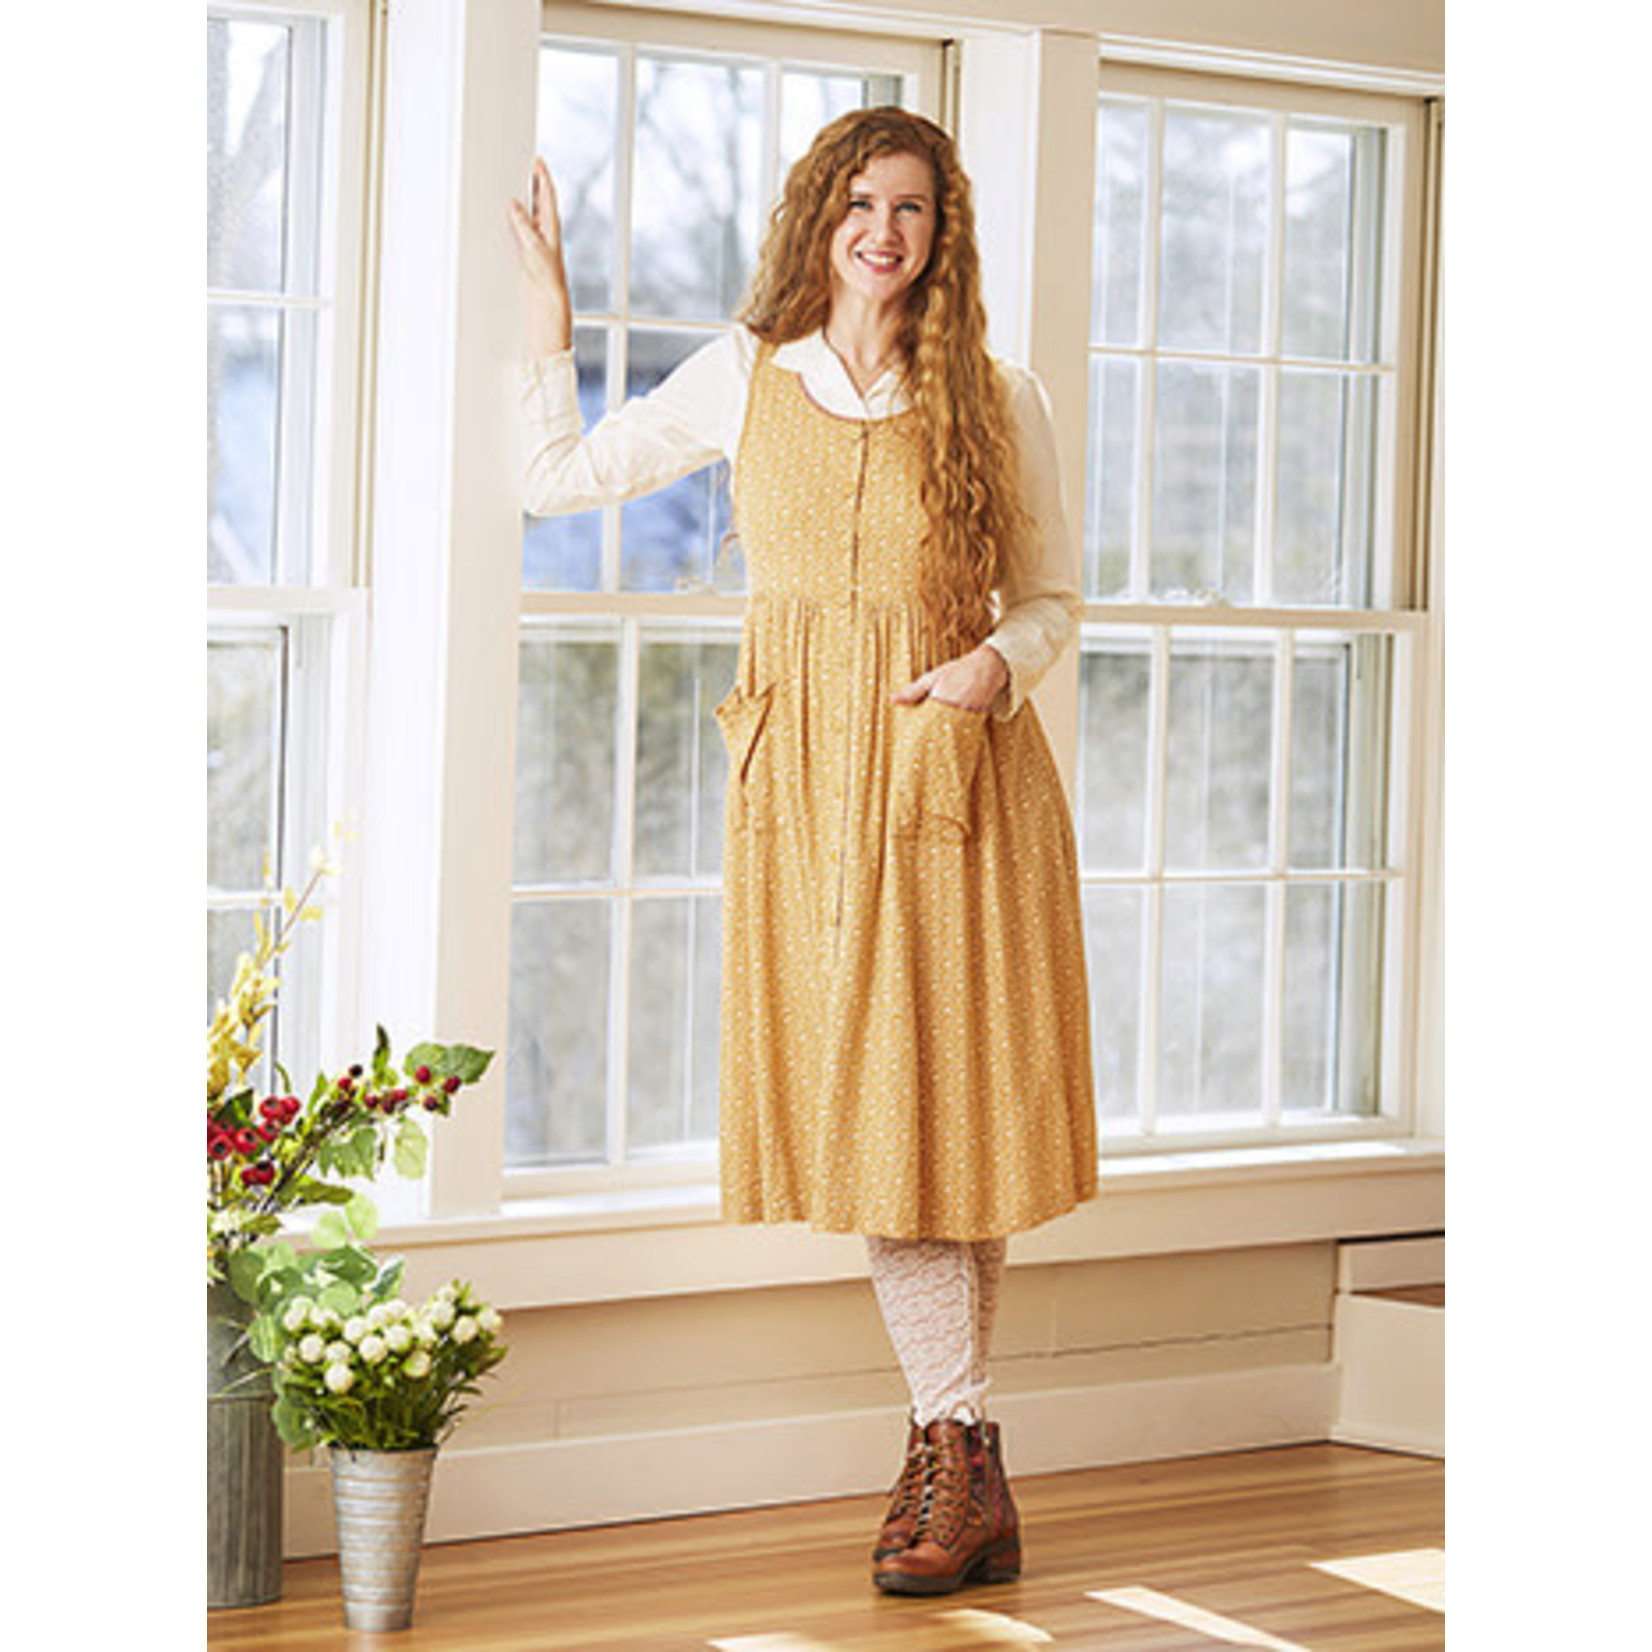 April Cornell Fall Forget Me Not Pinafore Dress